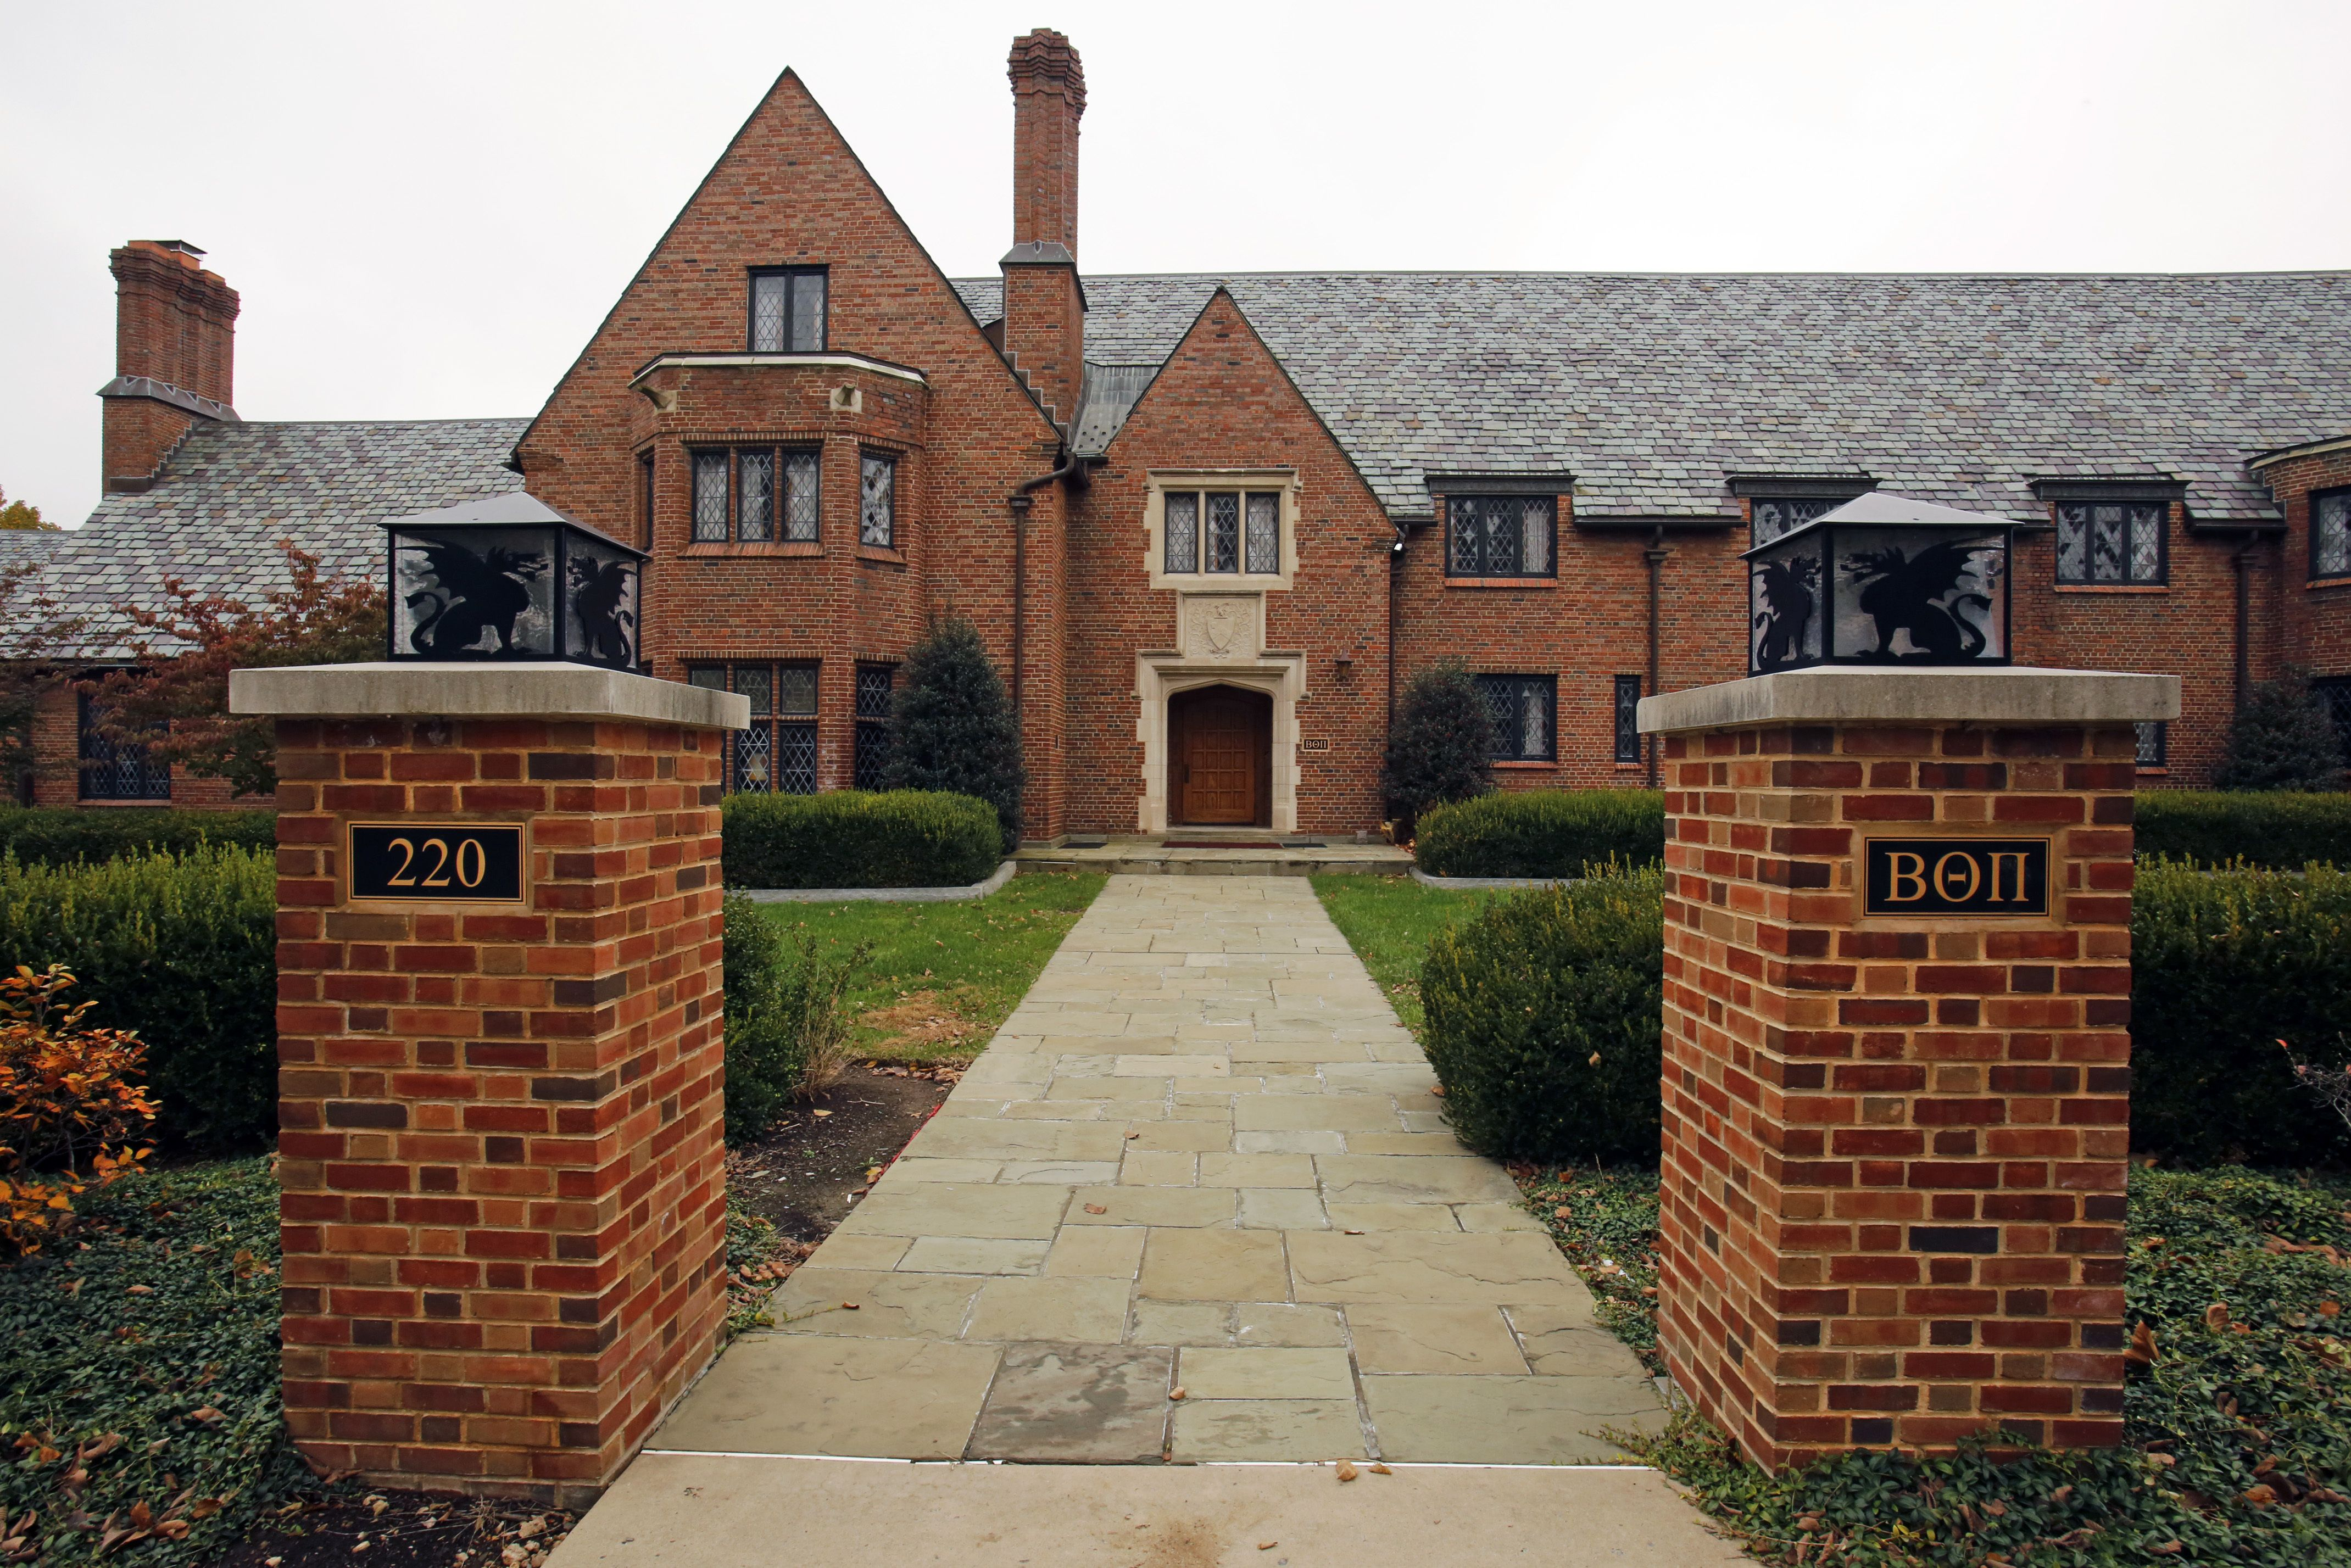 This is the Beta Theta Pi fraternity house on the Penn State University main campus in State College, Pa.